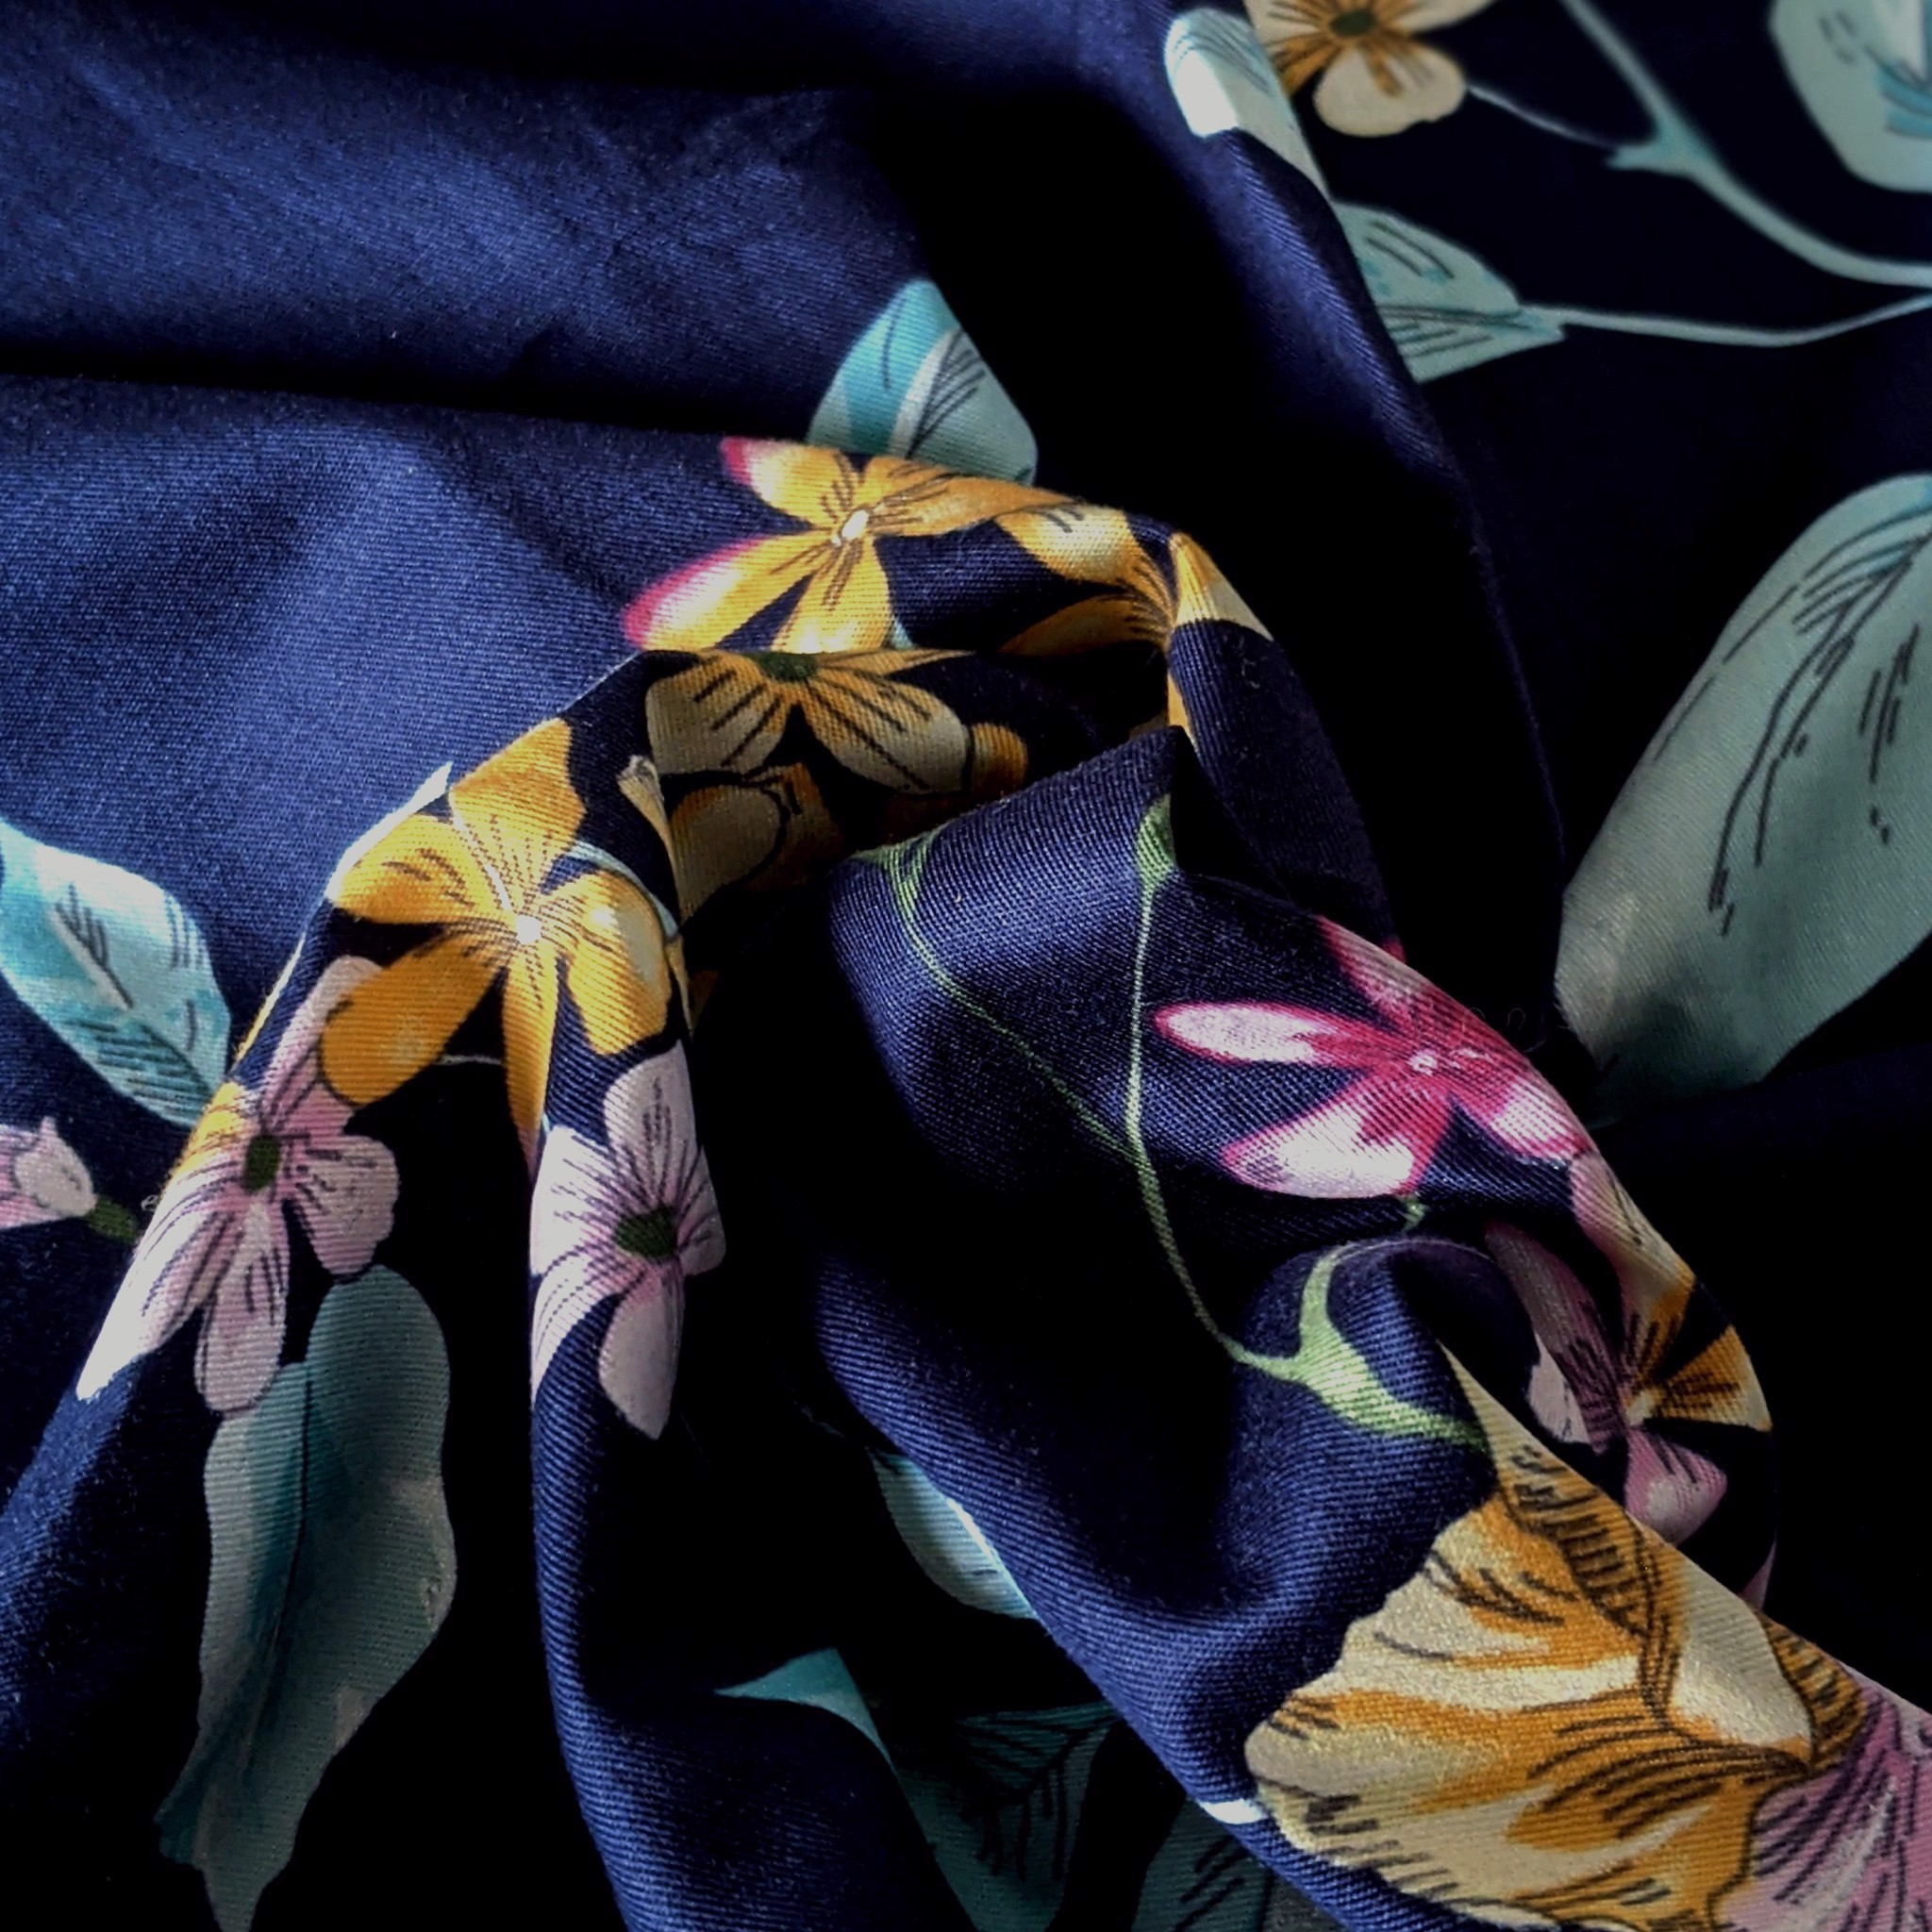 Pillow case 261 Flowers on nayvy blue